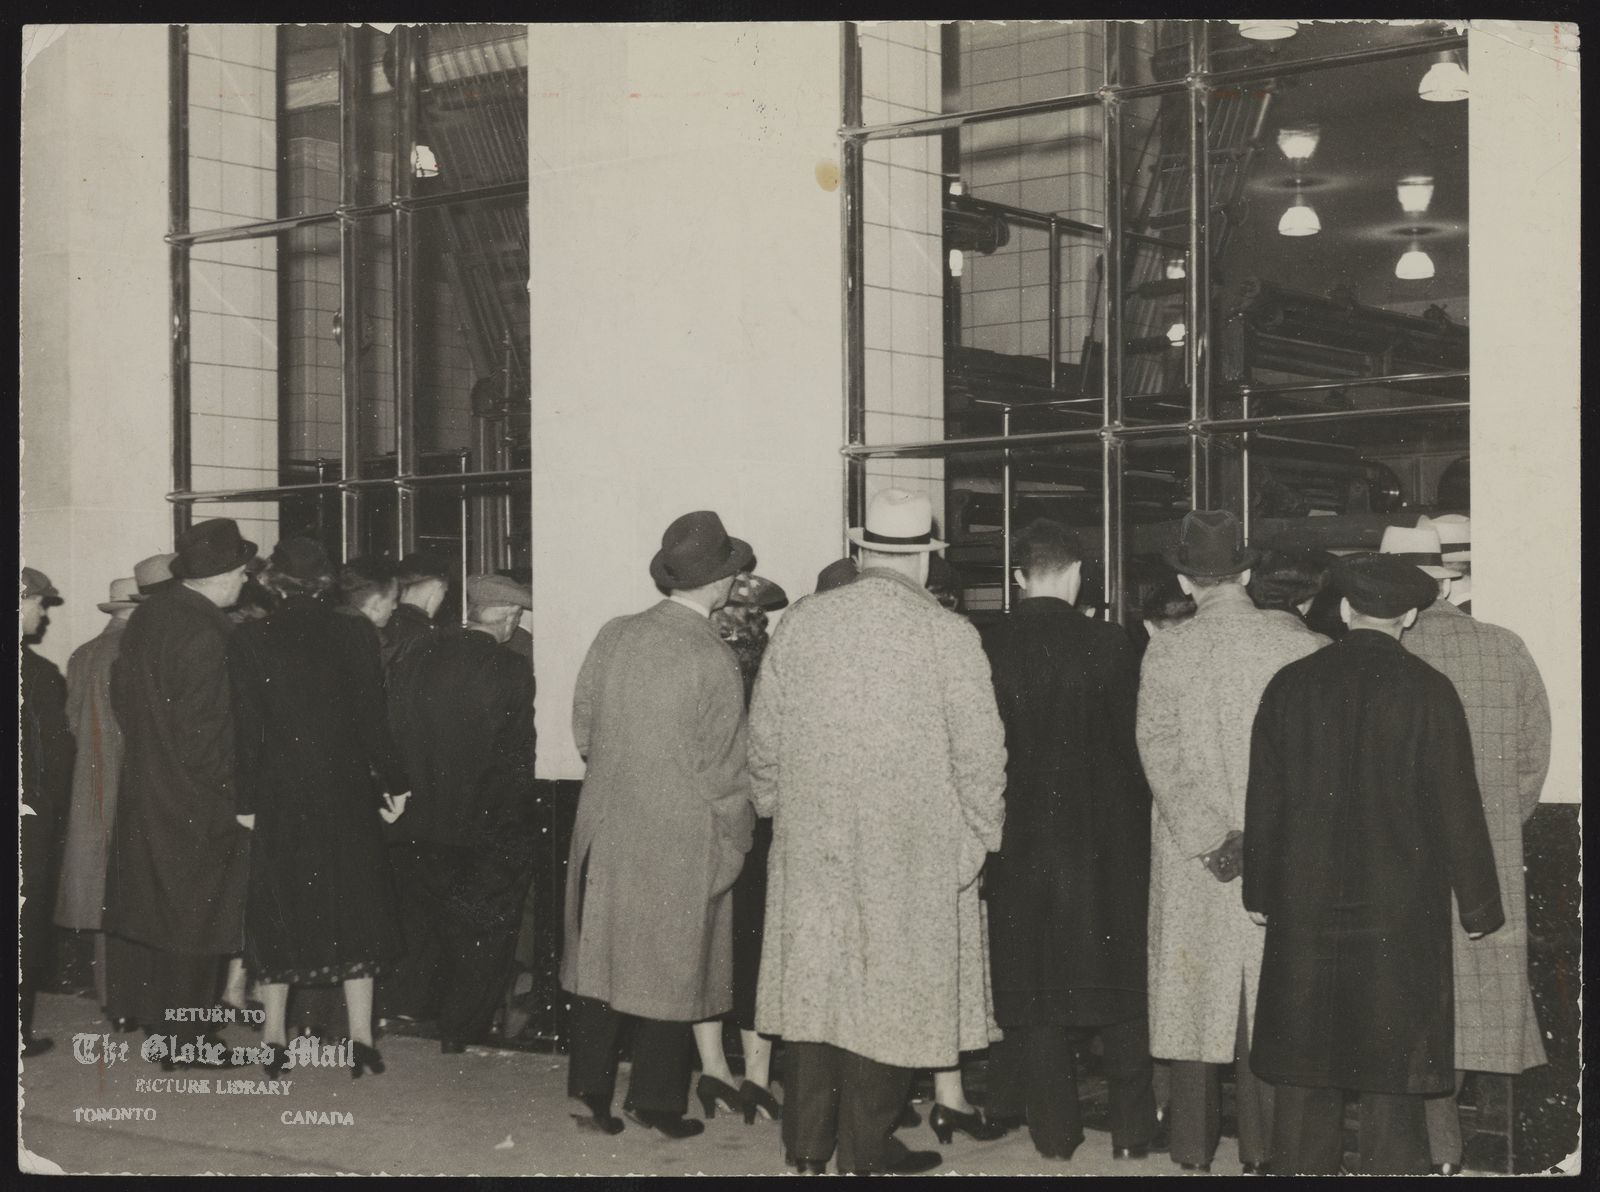 TORONTO GLOBE AND MAIL HISTORICAL-MISCELLANEOUS [WILLIAM H. WRIGHT BUILDING OPENS -- People on Yonge Street in Toronto looking through windows at Globe and Mail's new presses in the William H. Wright building, April 25, 1938. Photo by John Boyd / The Globe and Mail. (Scanned from glass plate Negative #51073 / 38115-07). ]